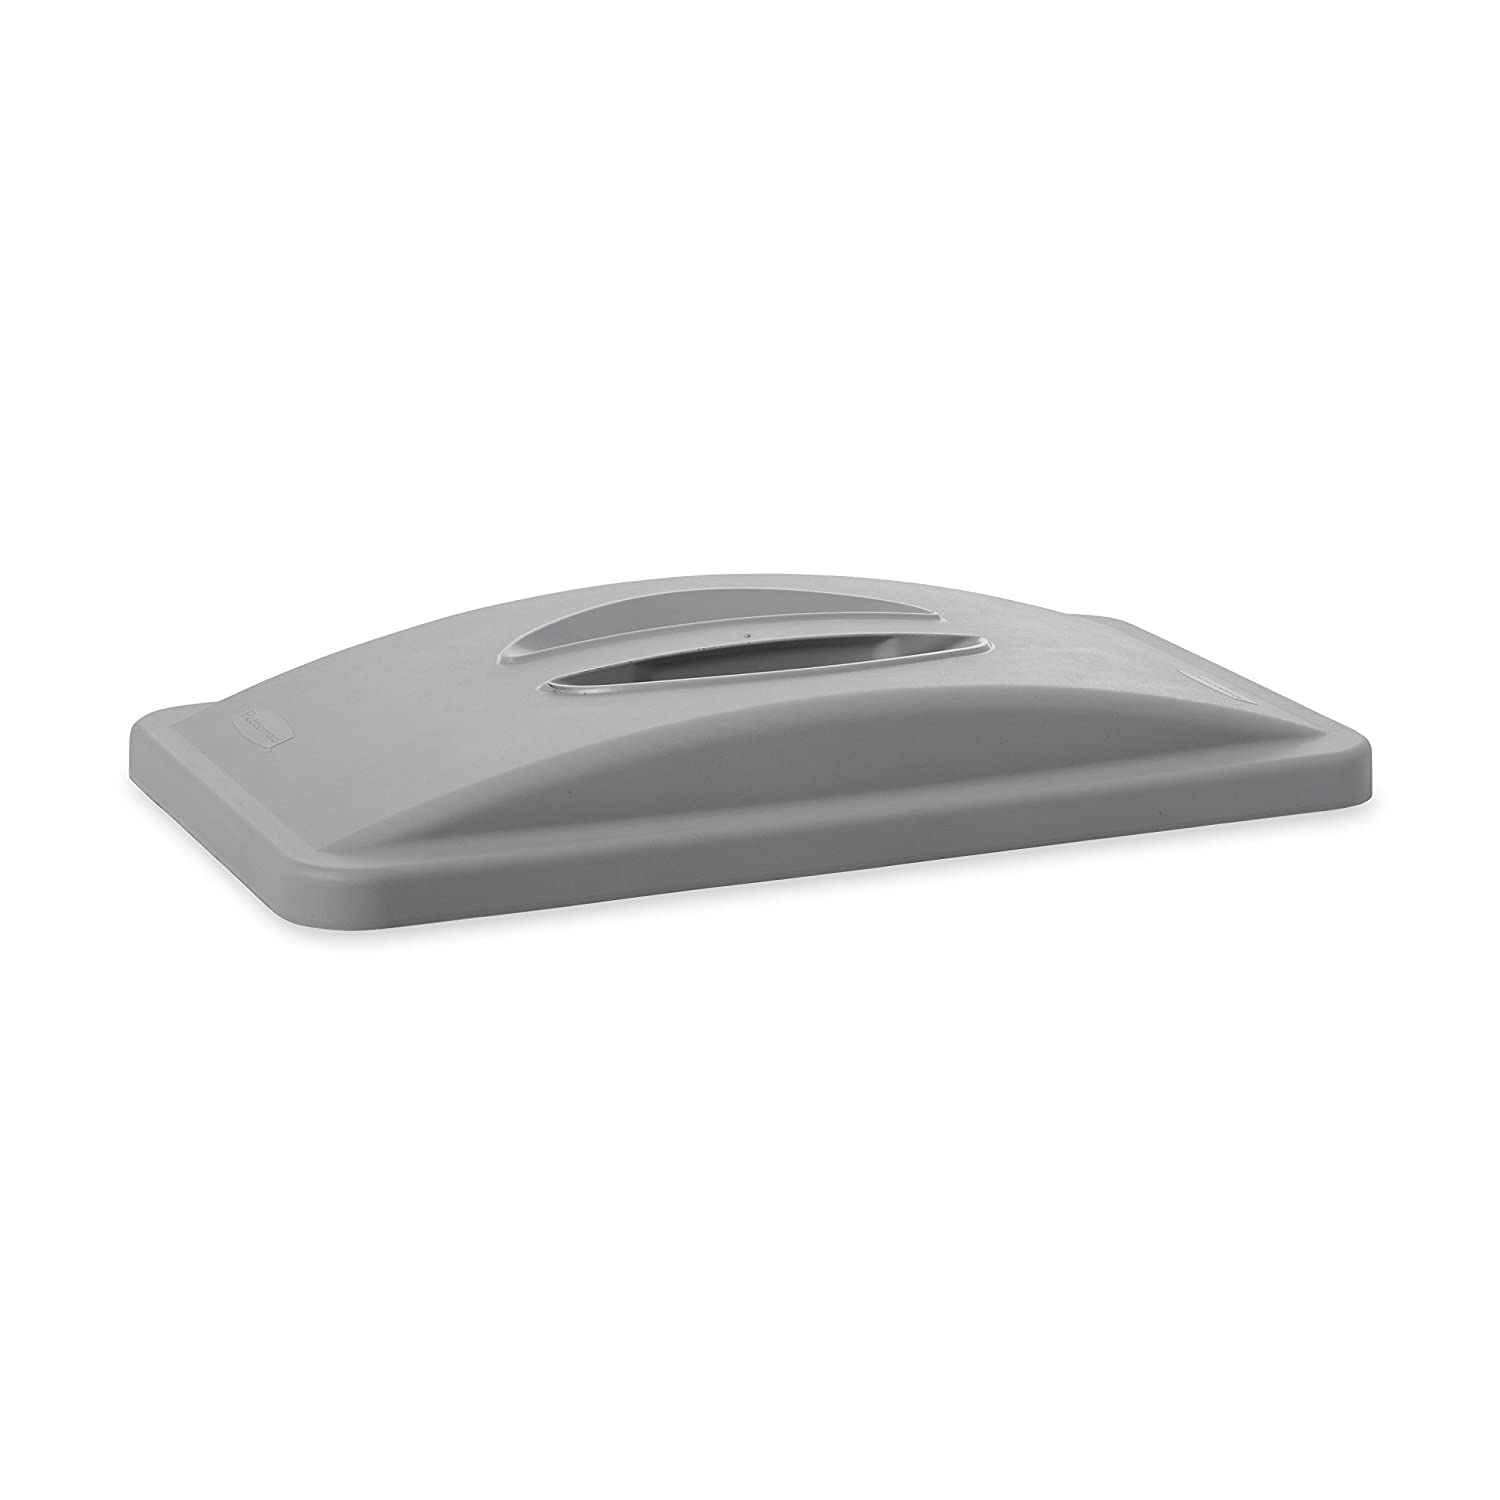 Rubbermaid Commercial 268888GY Slim Jim Waste Container Handle Top, 20 3/8w x 11 3/8d x 2 3/4h, Plastic, Light Gray